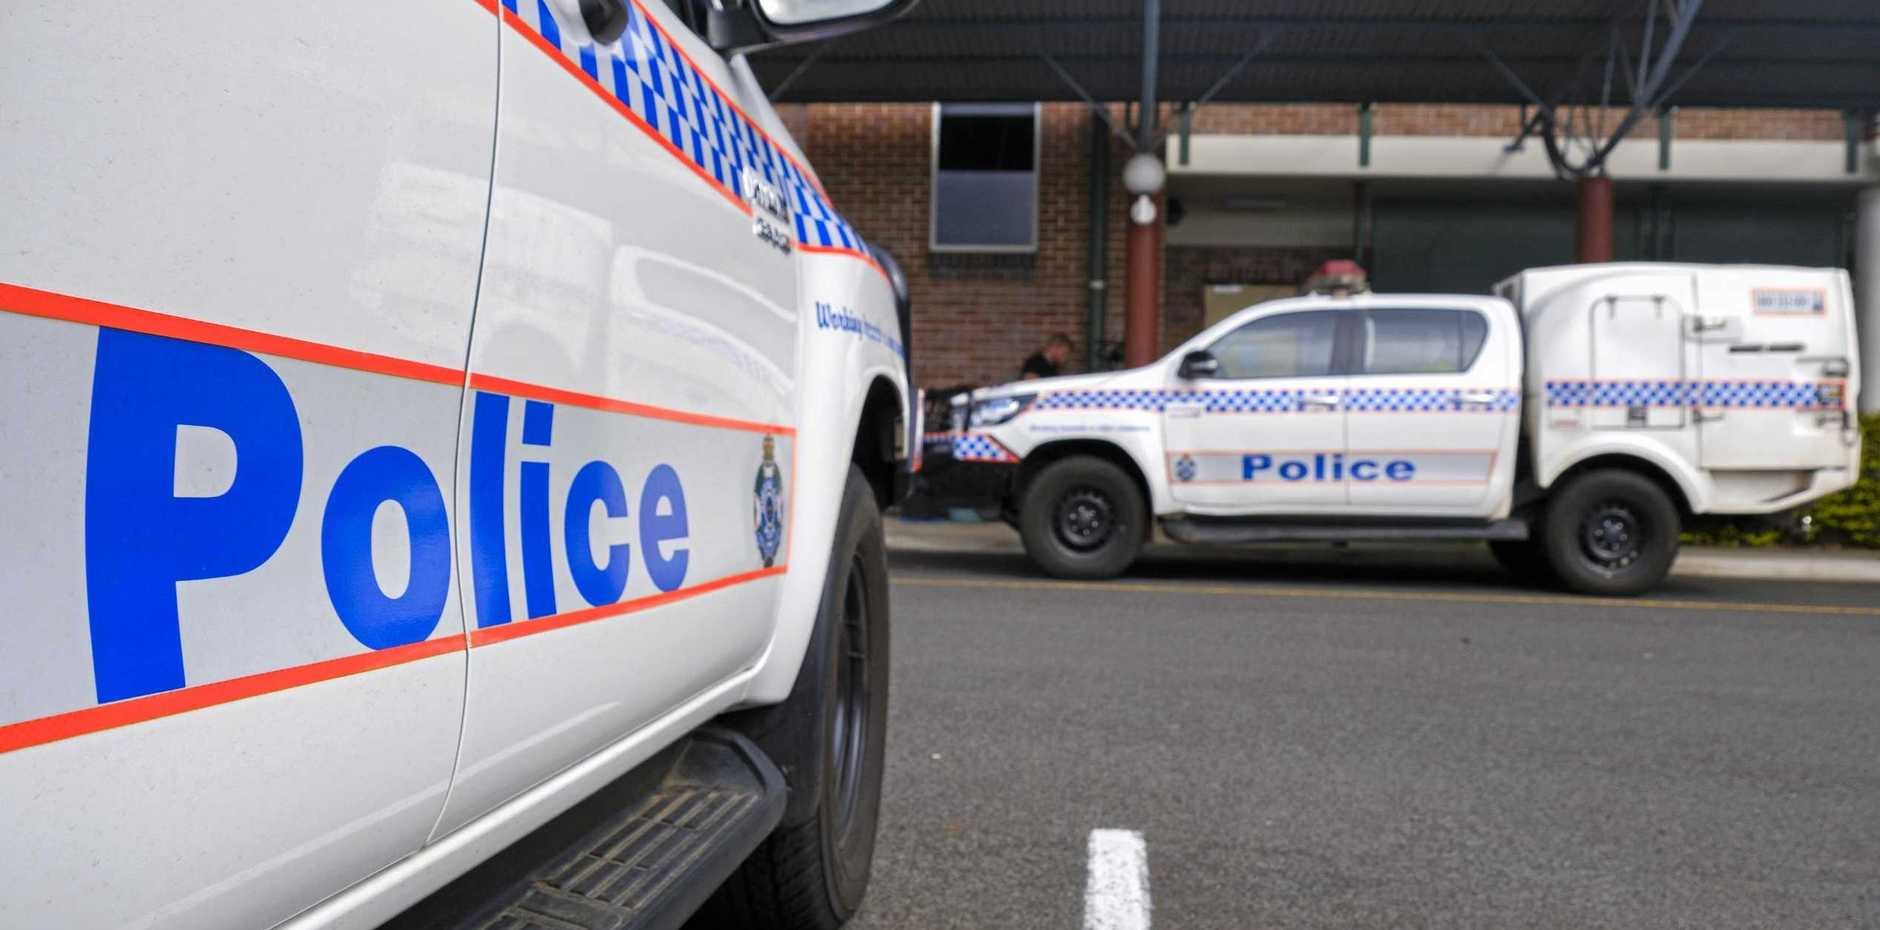 MAN SLASHED: An 18-year-old man has been injured after being slashed by a bladed weapon in a random attack.